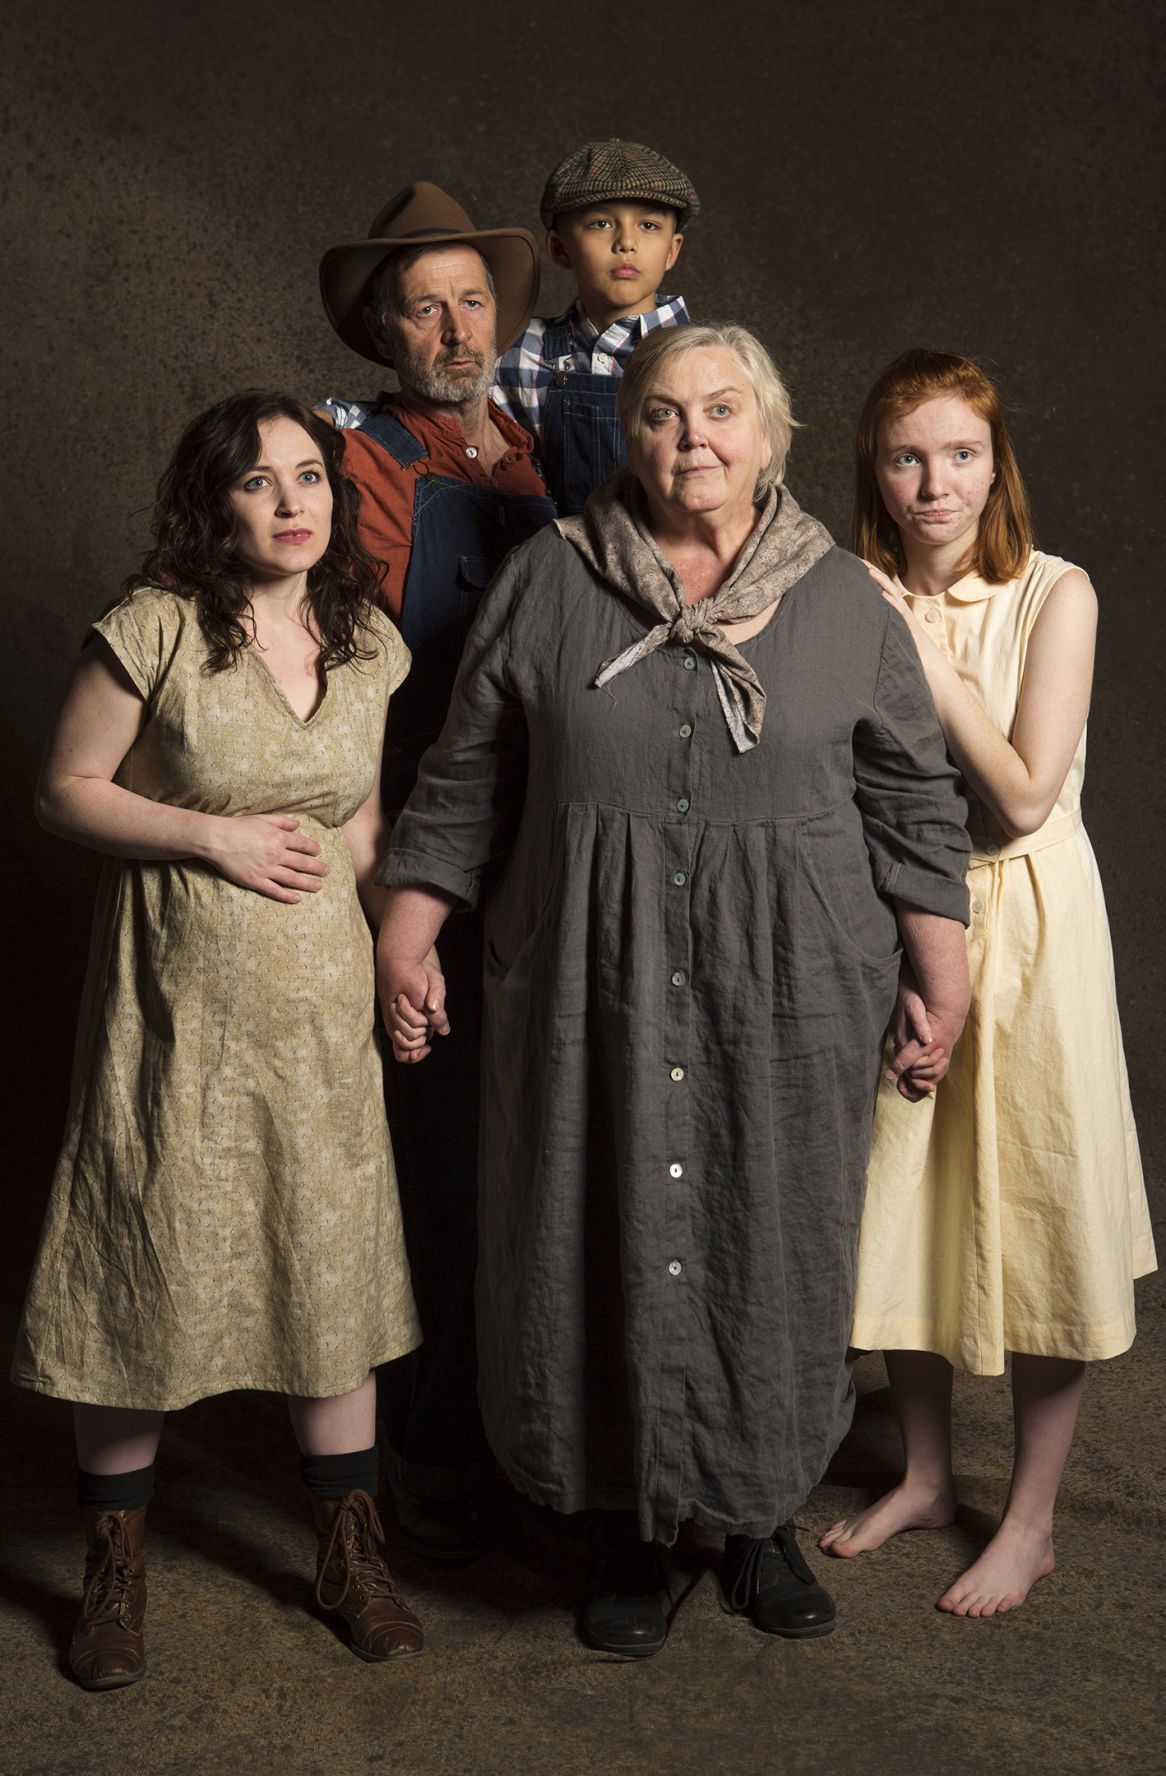 Part of the Joad Family:  Bryn Booth as Rose of Sharon, David Greenwood as Pa Joad, Gabriel Morales as Winfield, Cynthia Meier as Ma Joad, Florie Rush as Ruthie.  Photo AZ Daily Star.